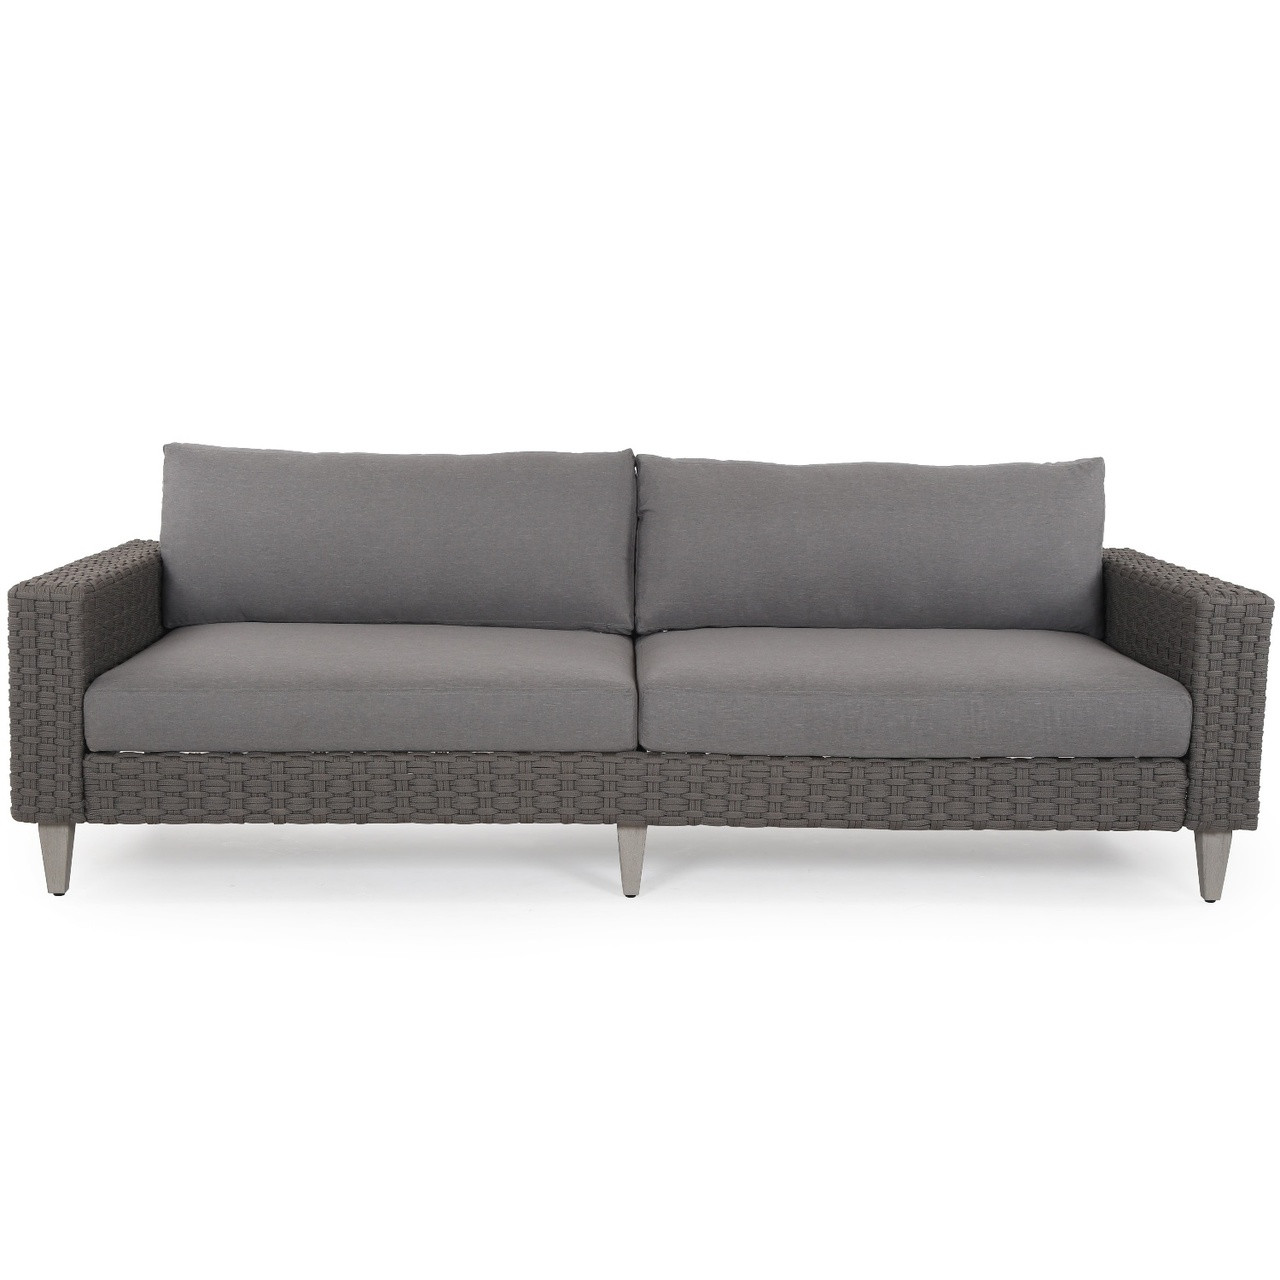 Remi Charcoal Woven Rope Outdoor Sofa